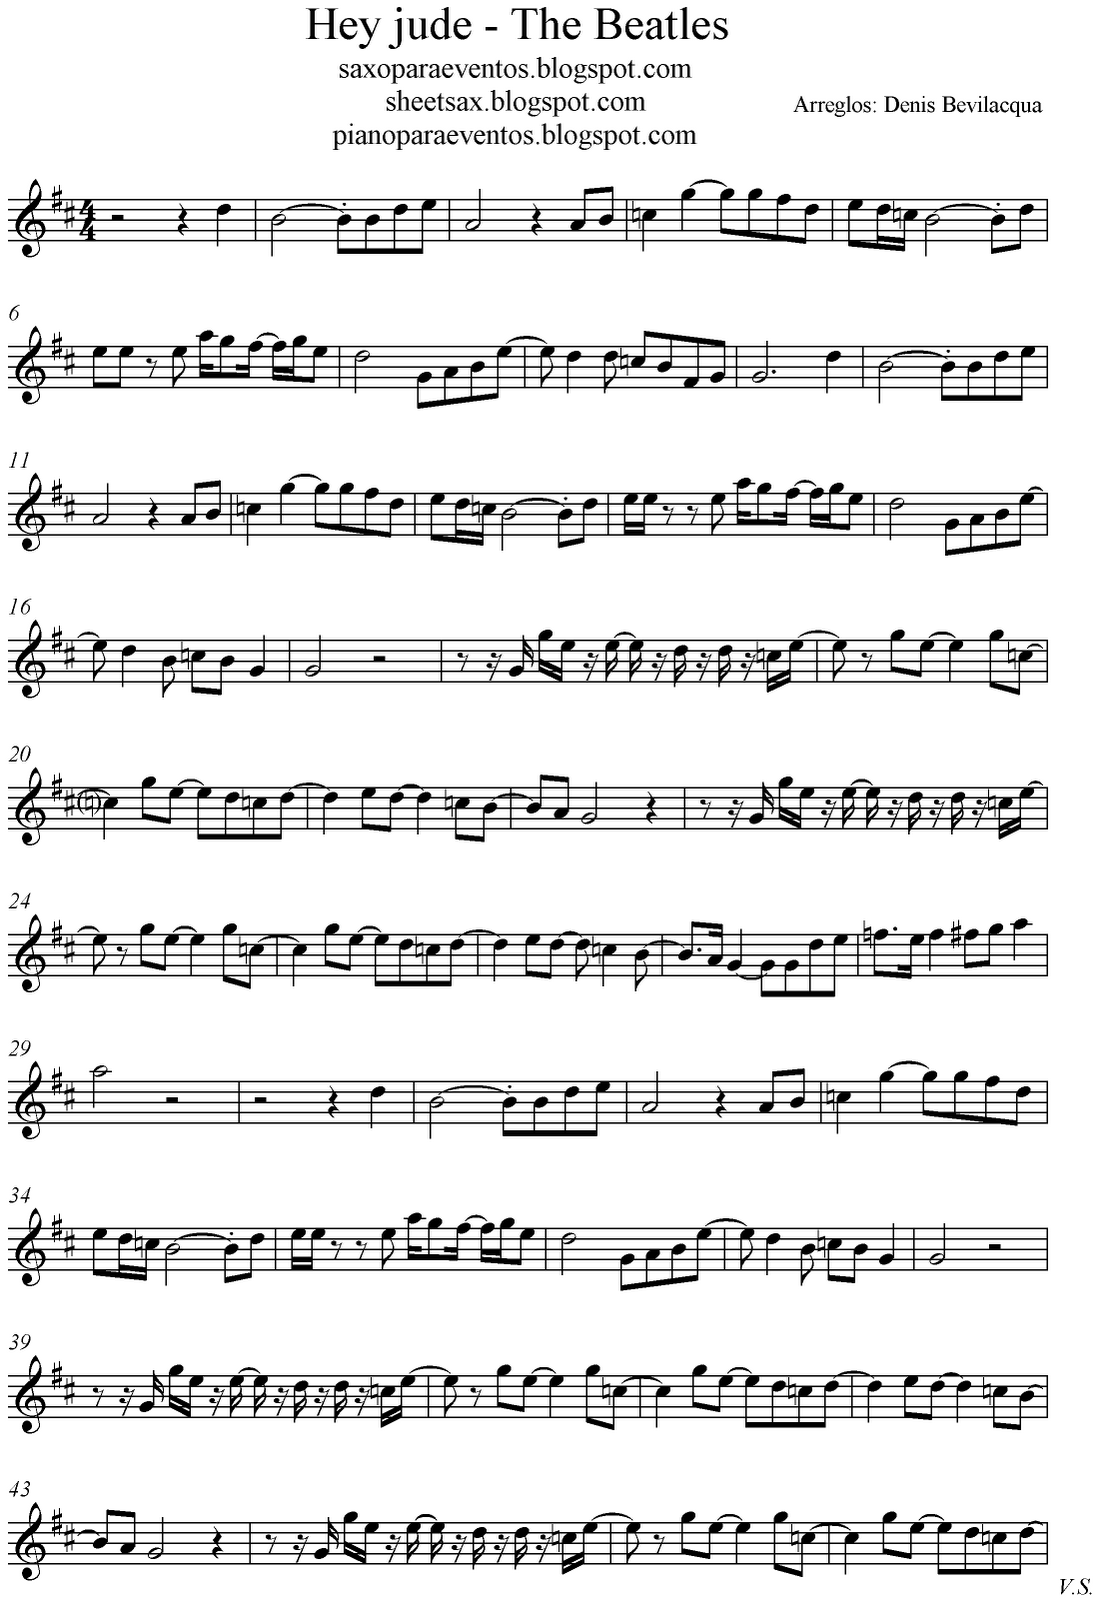 Free sheet music for sax hey jude the beatles score and track sheet